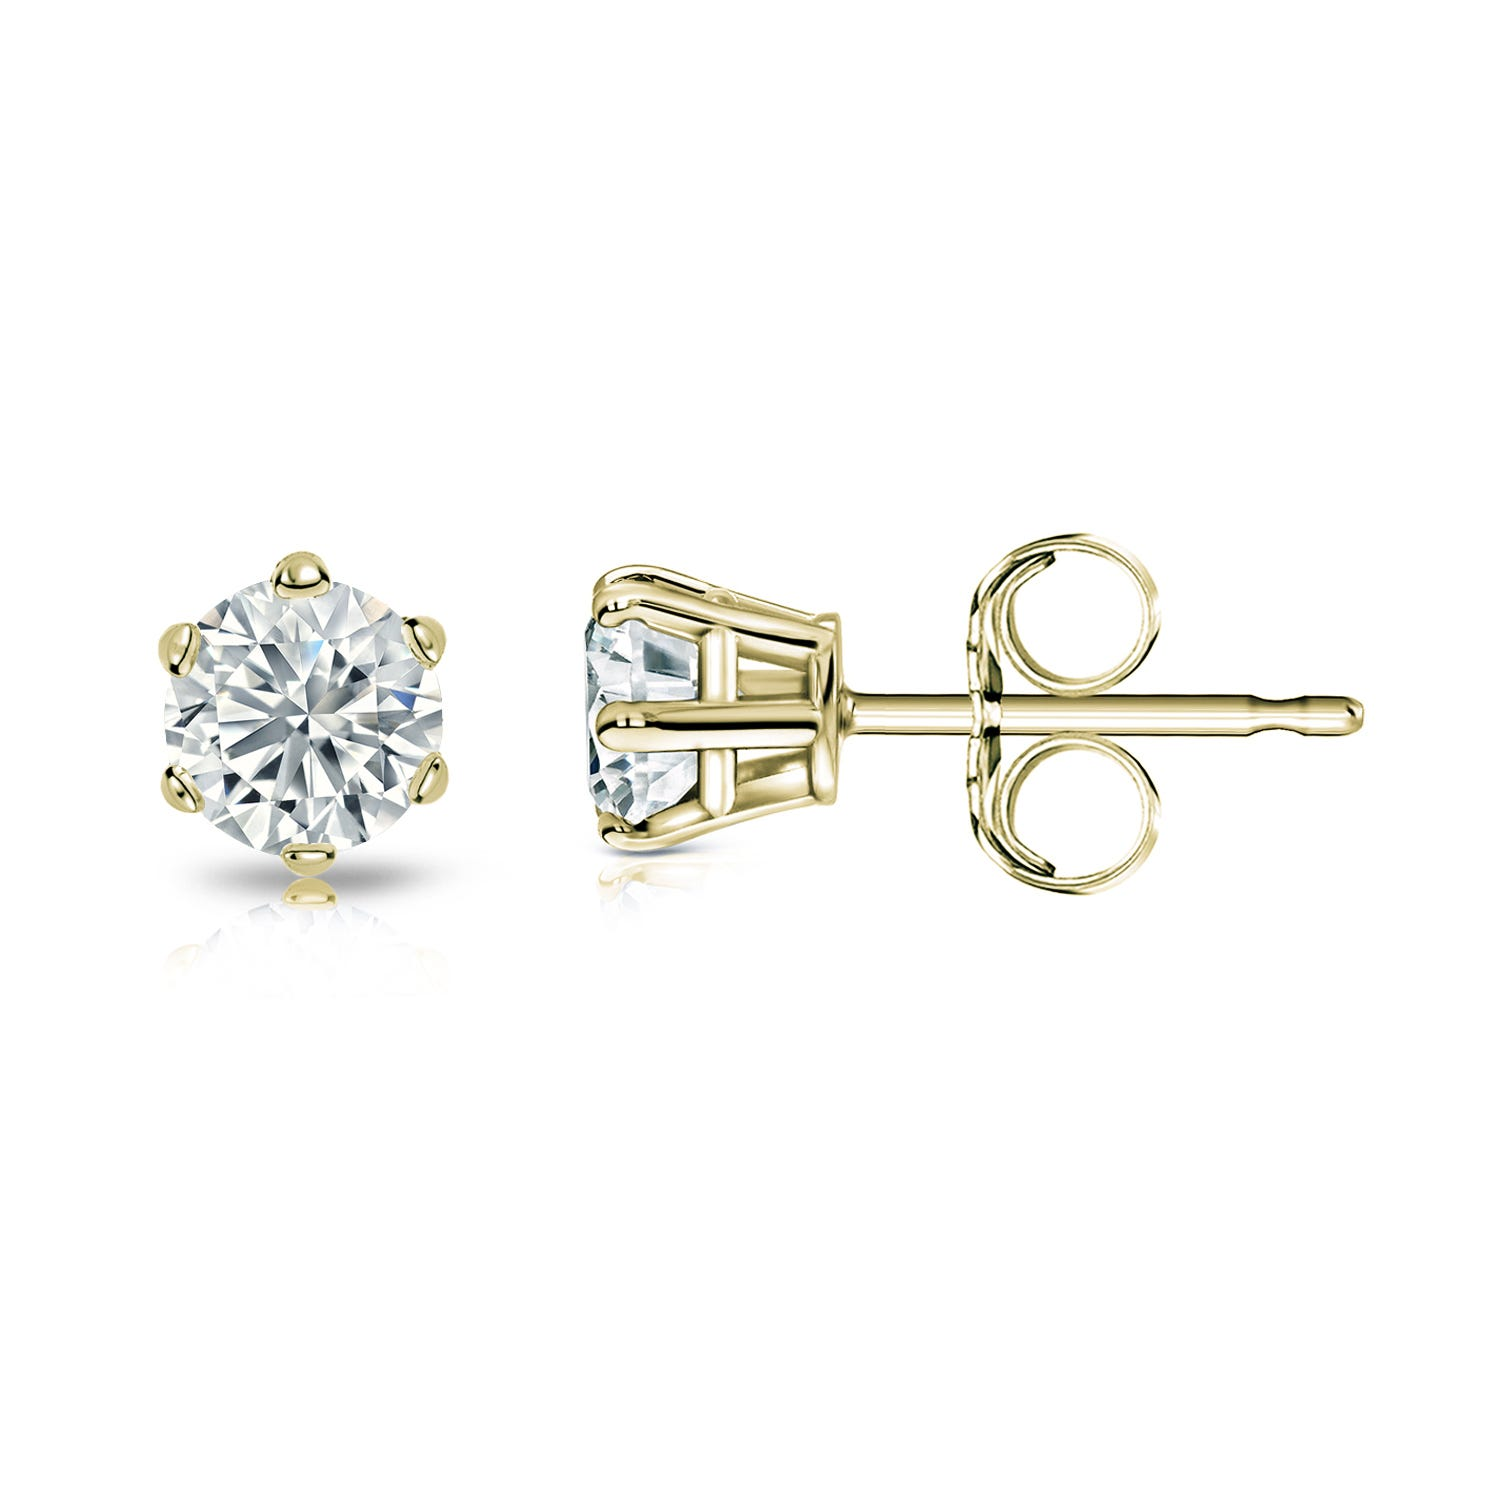 Round Diamond 1/3ctw. (IJ-I2) Solitaire Stud 6-Prong Earrings in 10K Yellow Gold